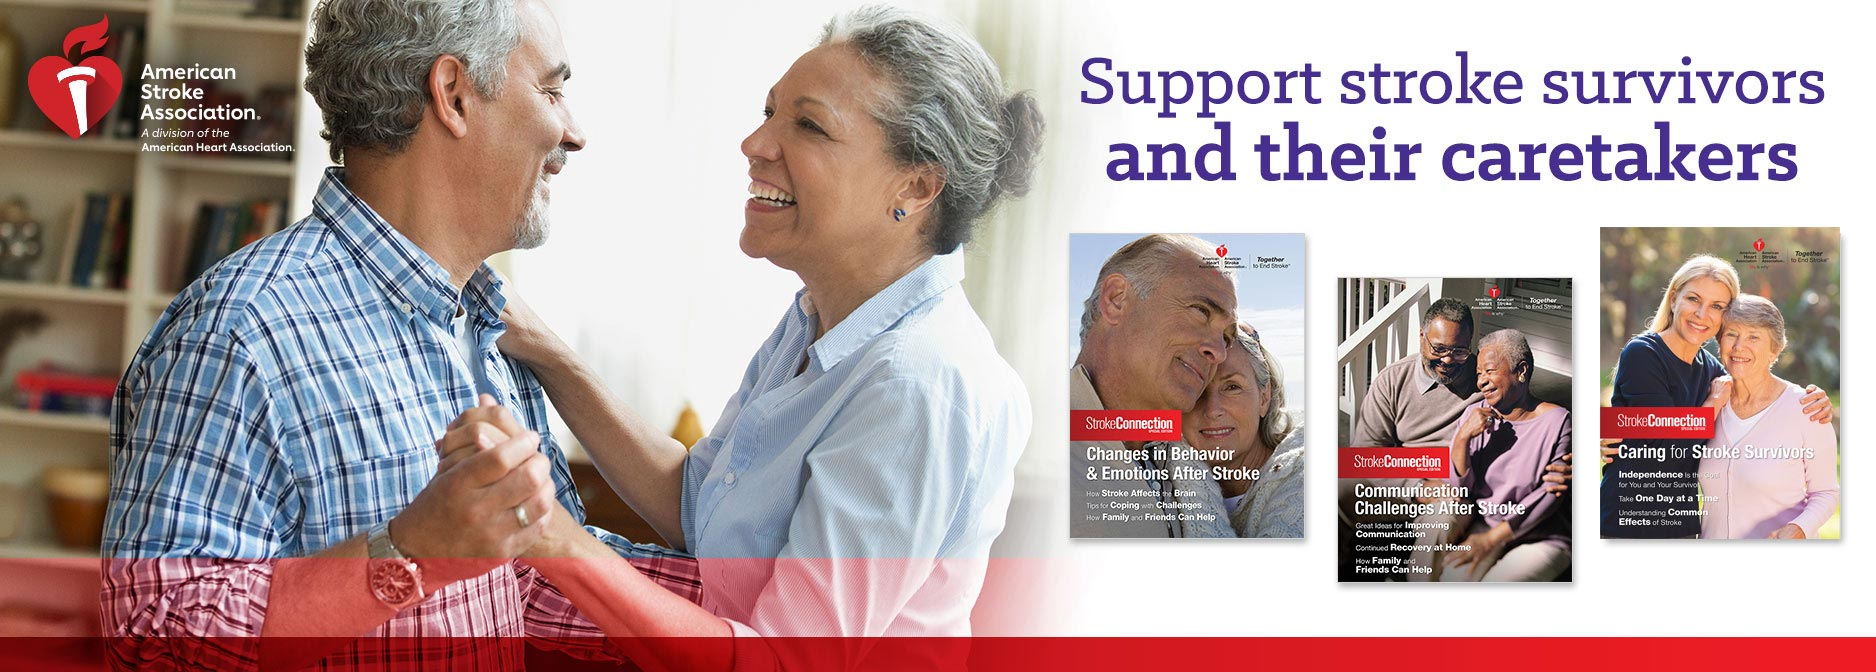 Support stroke survivors and their caretakers